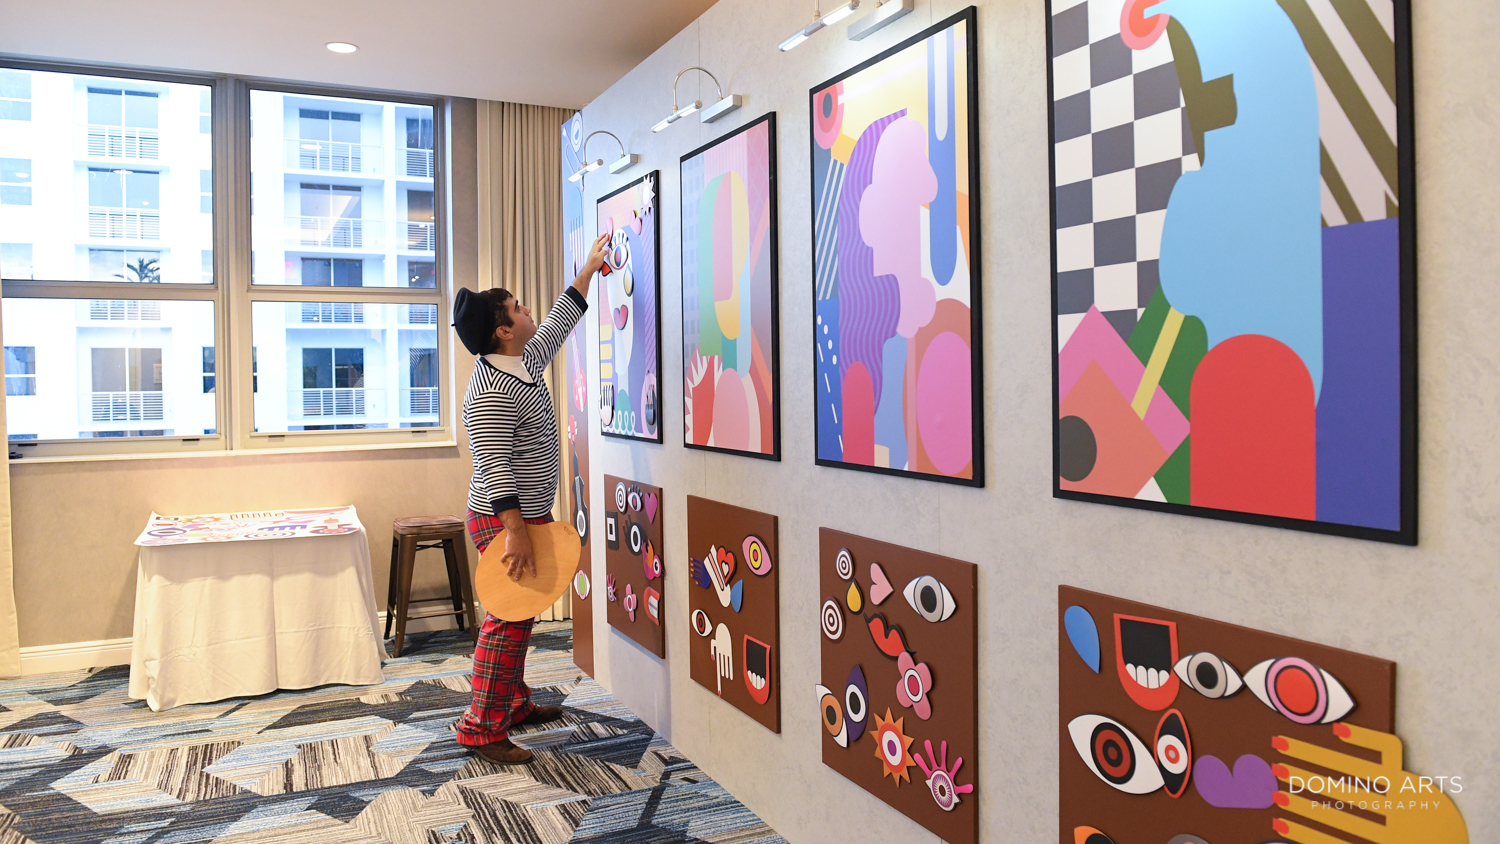 Interactive art exhibit pictures at Circ Hotel Grand Opening Corporate Event in Hollywood, Florida